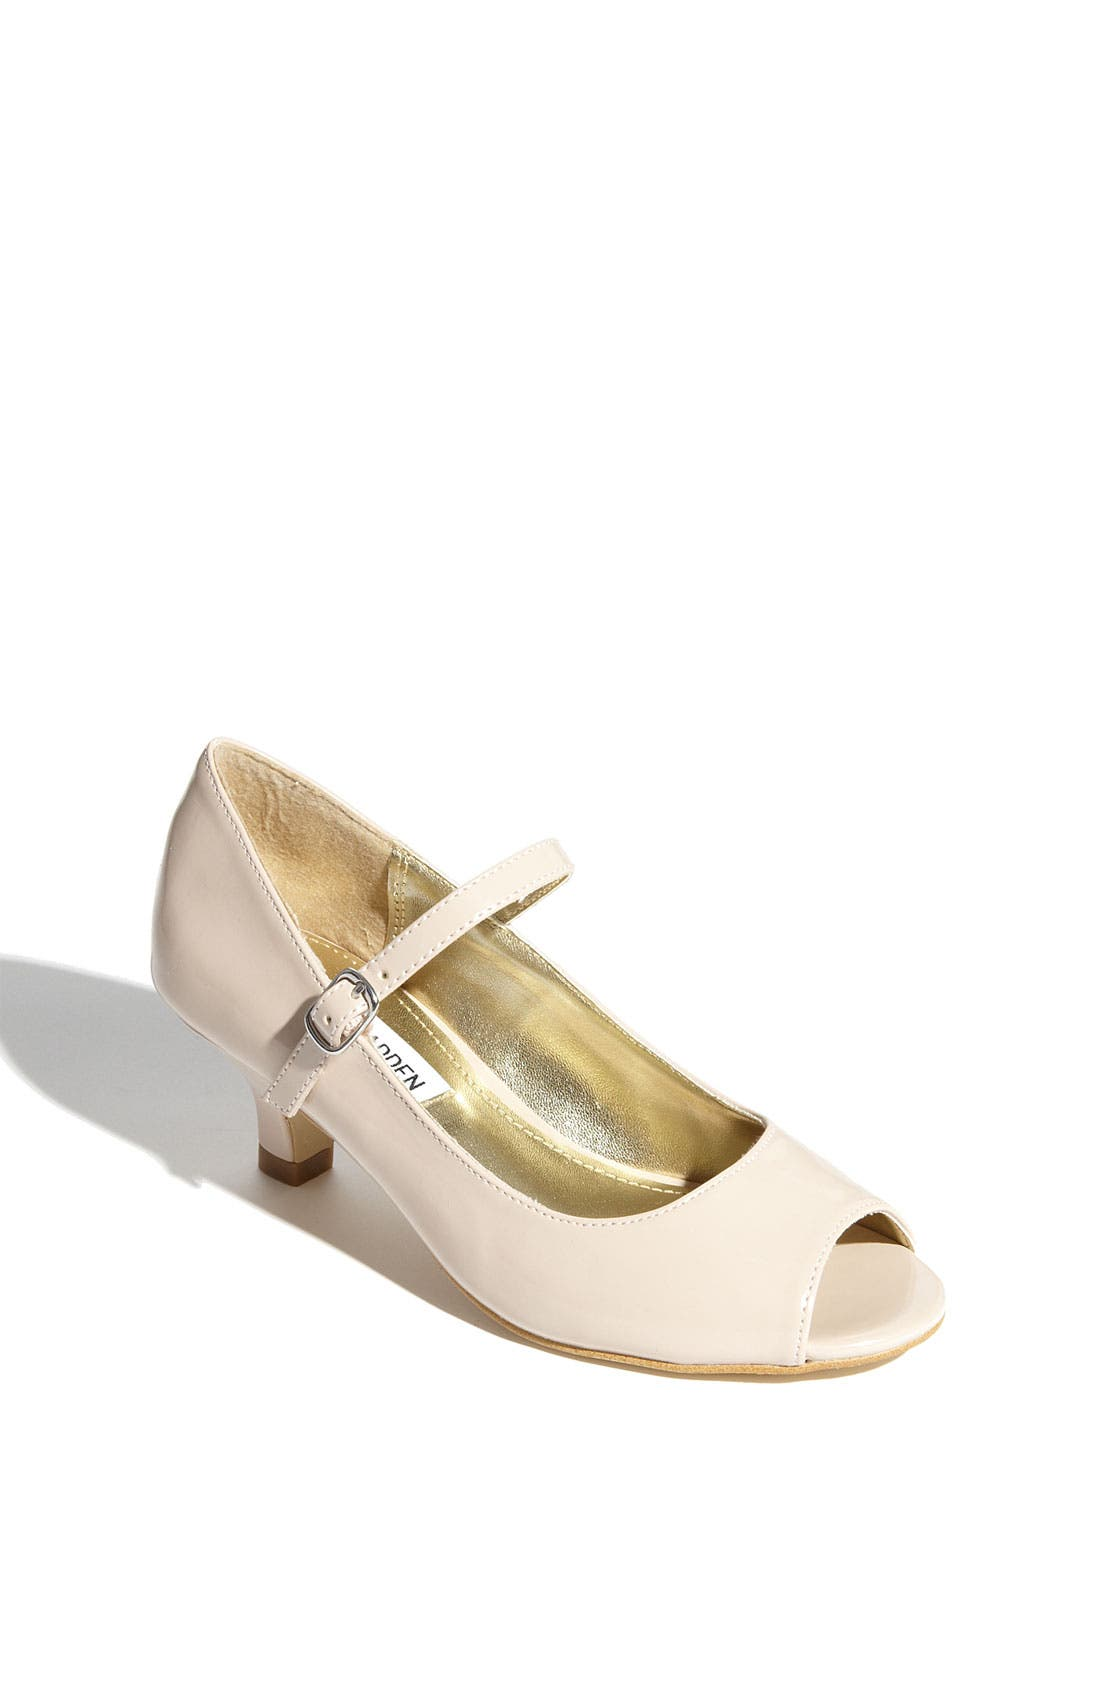 Main Image - Steve Madden 'Babyy' Peep Toe Pump (Little Kid & Big Kid)